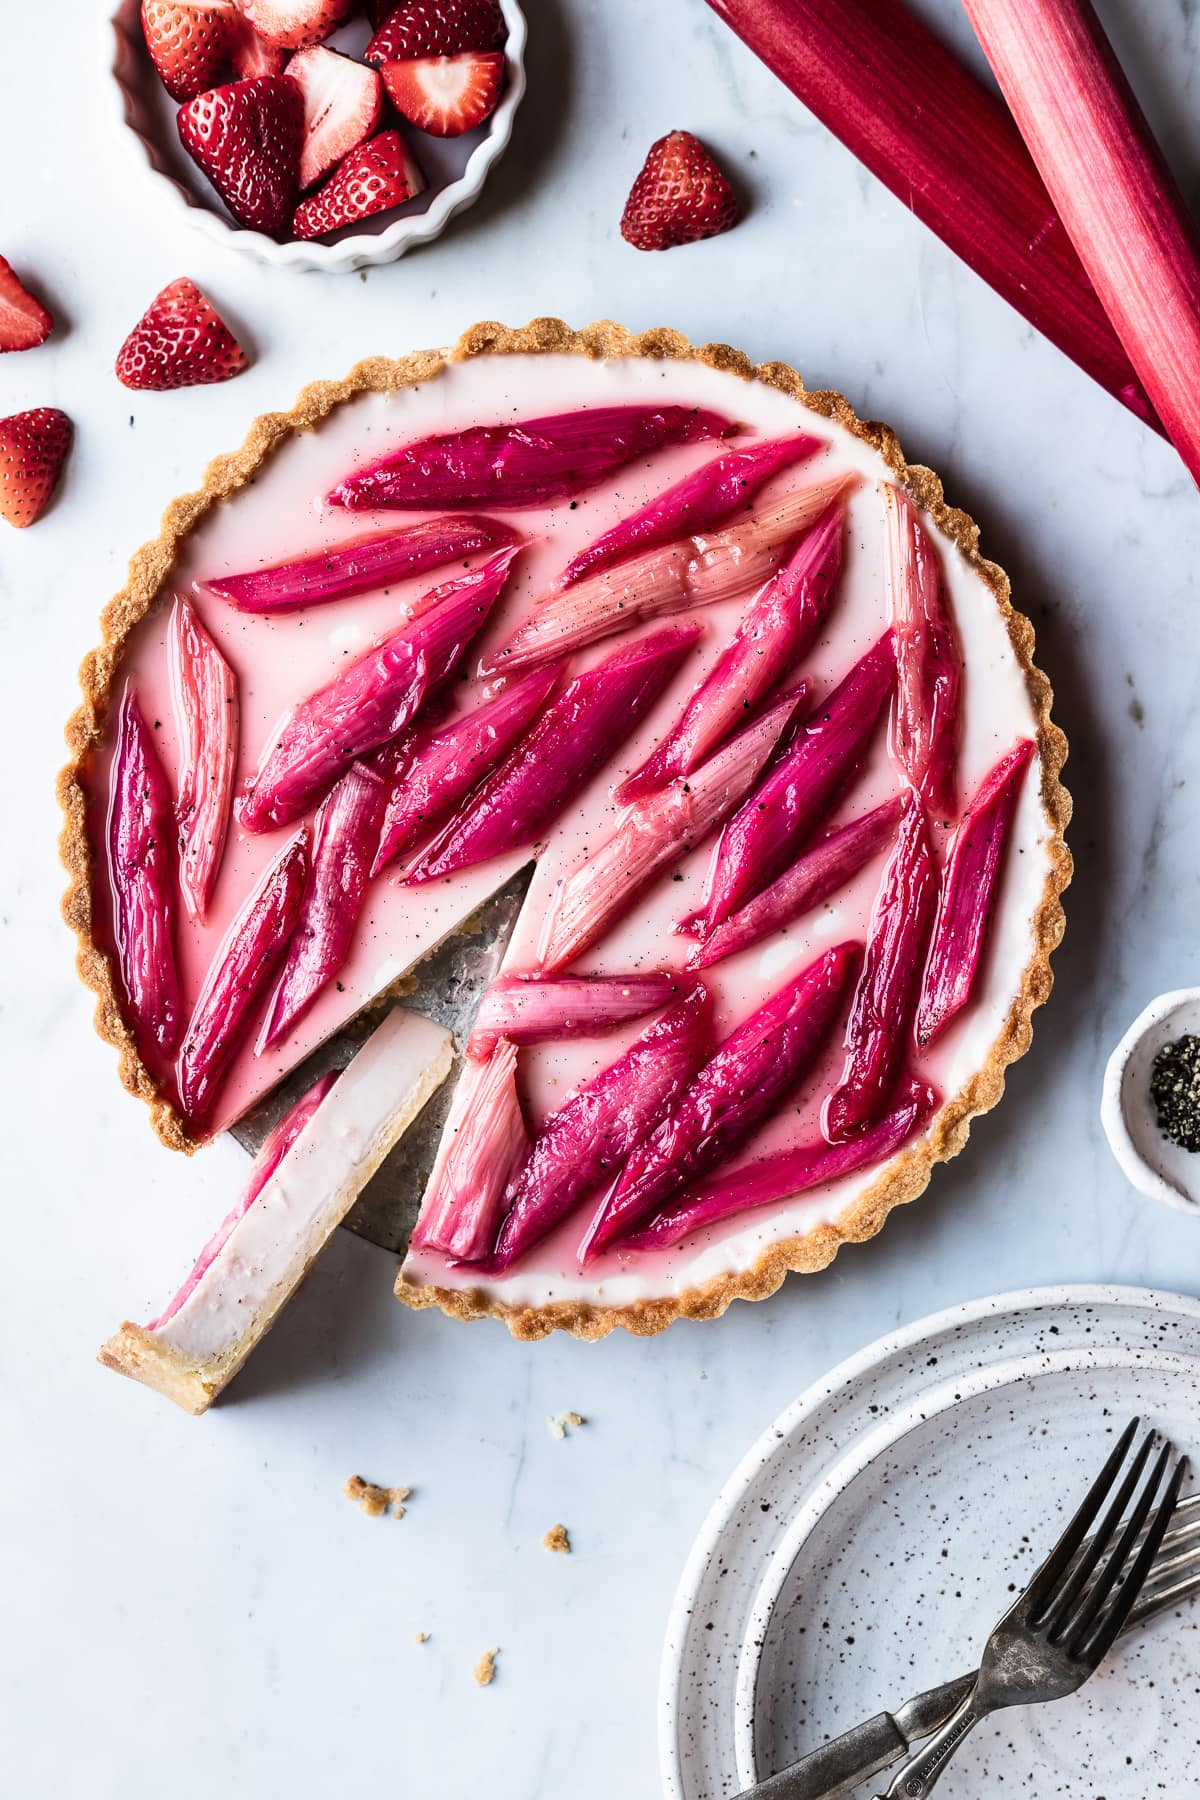 Strawberry rhubarb panna cotta tart with a slice cut out and turned sideways to see the filling